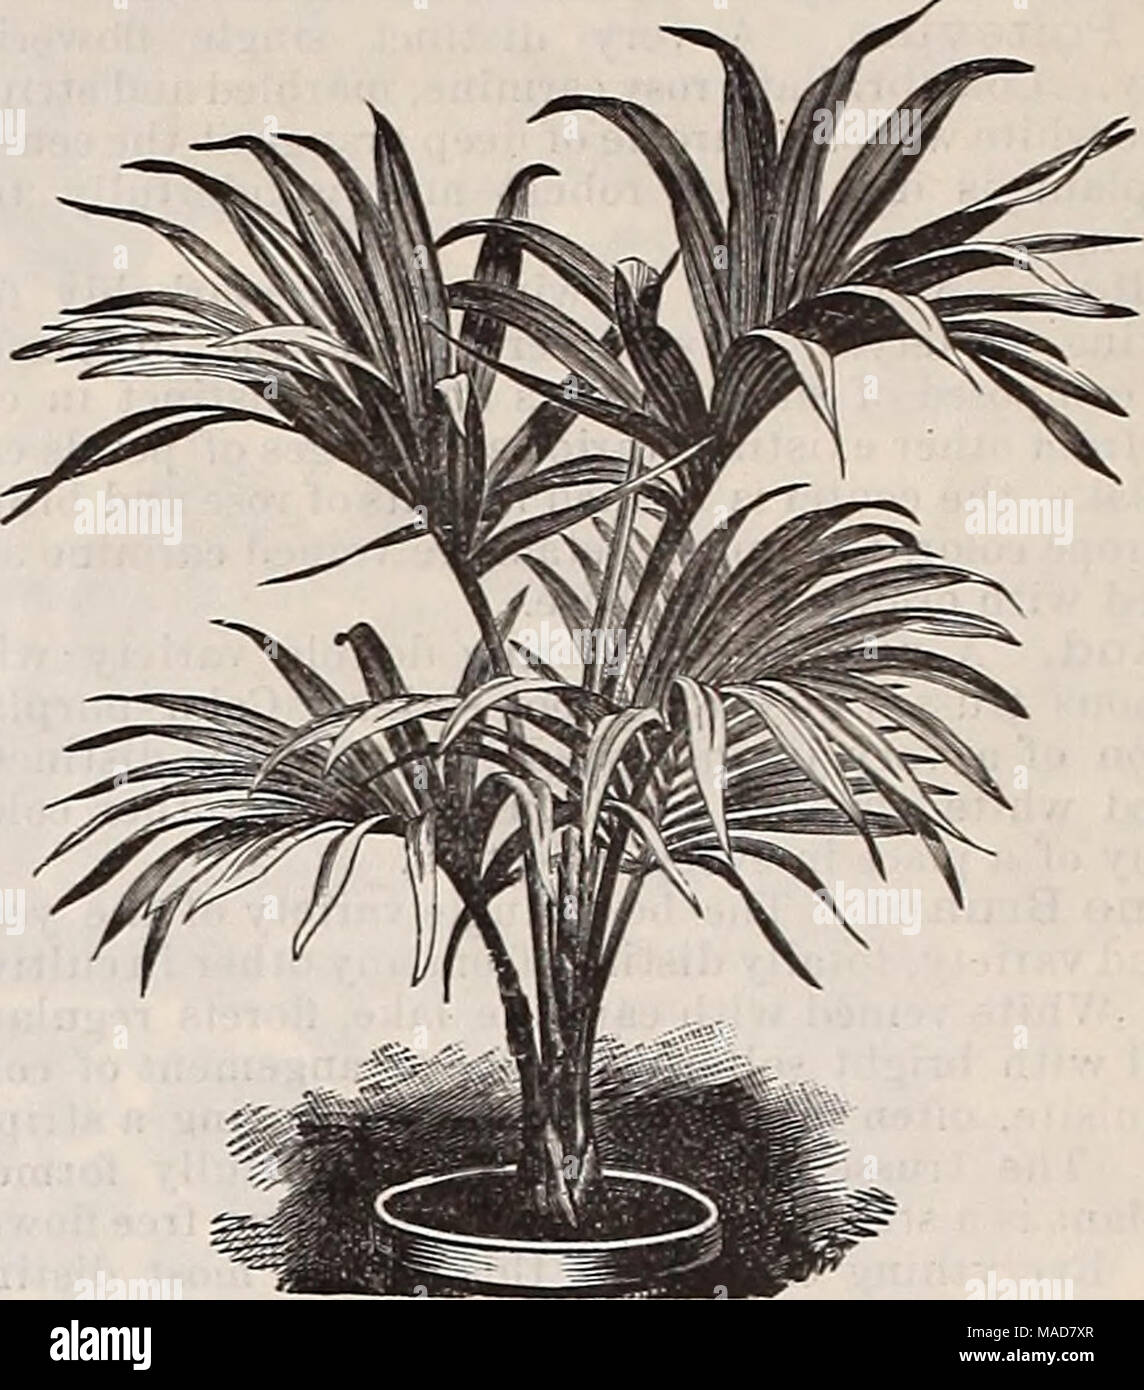 . Dreer's quarterly wholesale price list : seeds plants bulbs tools fertilizers sundries &c . Kentia Belmoreana. Kentia Fosteriana. We are the largest growers of Palms in this country. The additional 106,000 square feet of glass erected by us during the past two summers is being devoted entirely to this class of plants. Our stock of young Palms especially, has never been so complete as at the present time, being clean, healthy and well grown, and we are certain will compare favorably with stock supplied by us in previous seasons. We limit our list to the popular and desirable varieties for - Stock Image